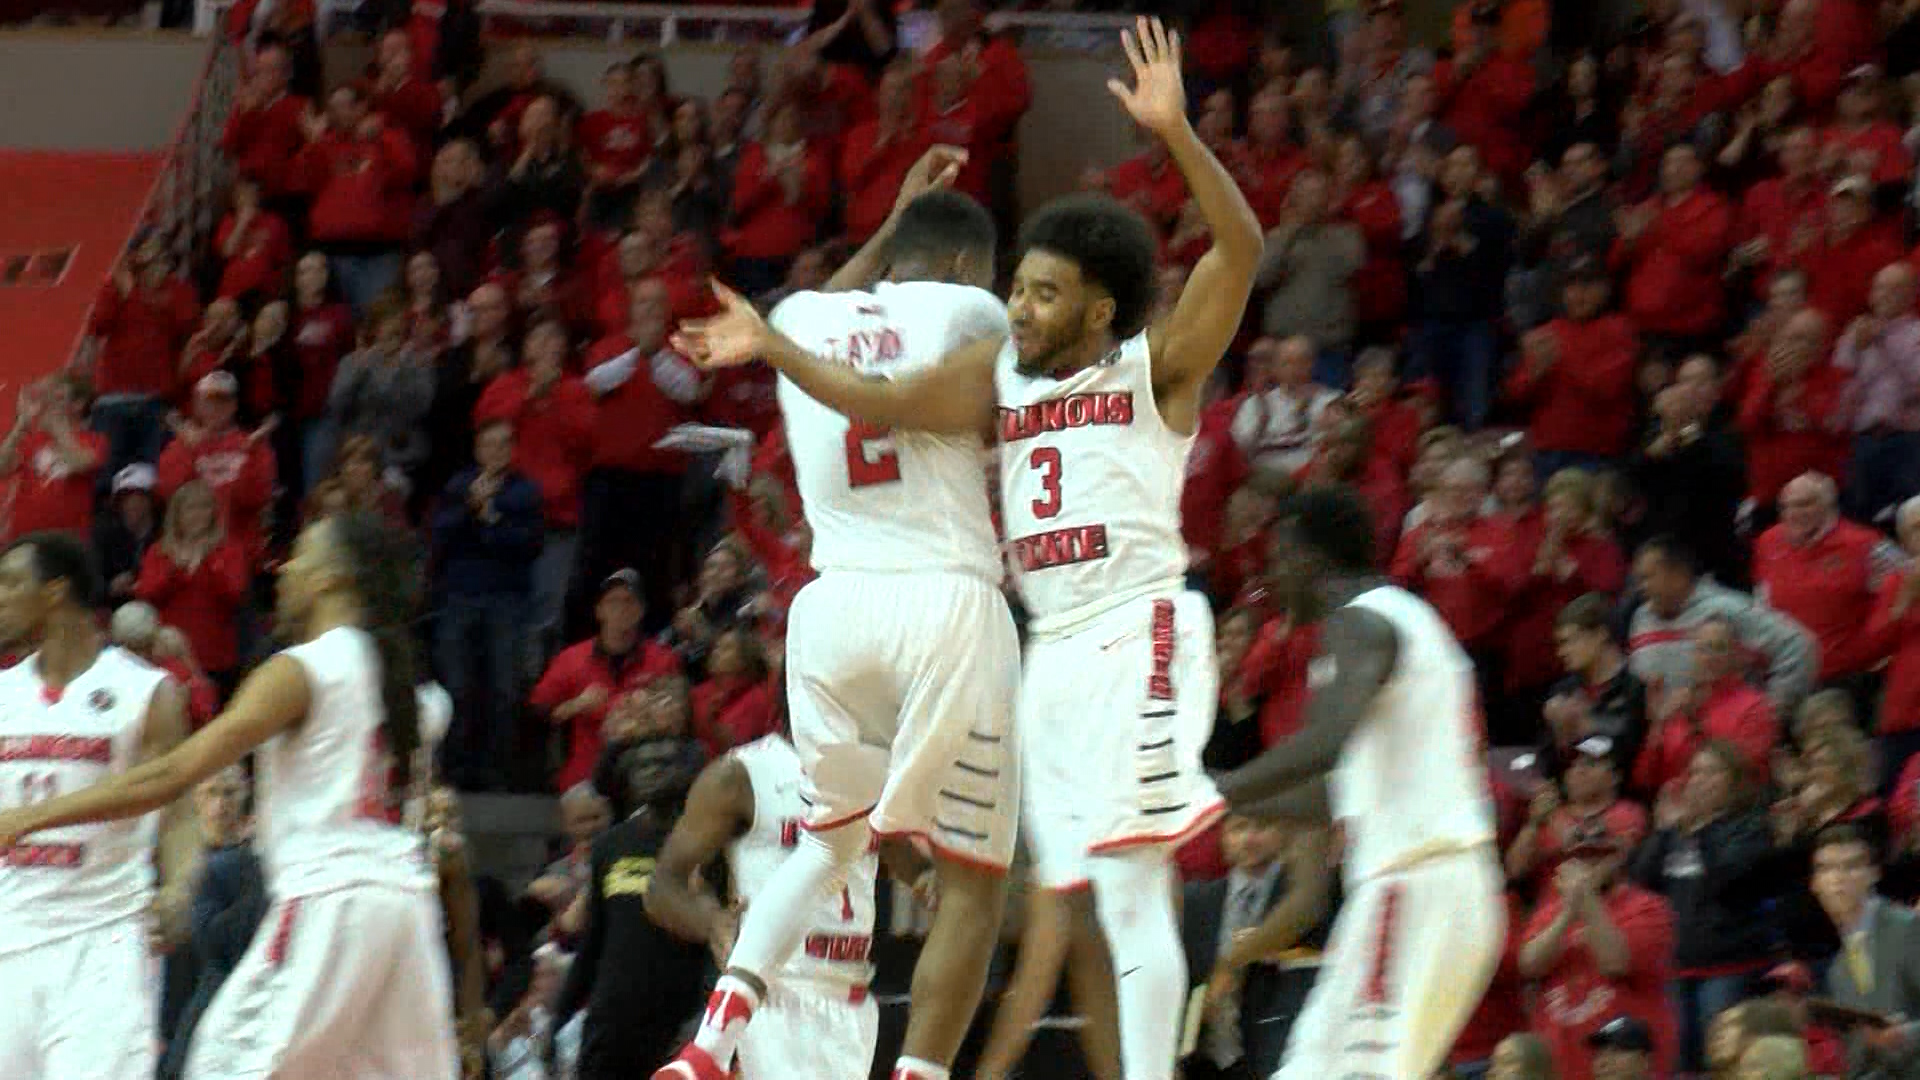 ISU celebrates win over Wichita